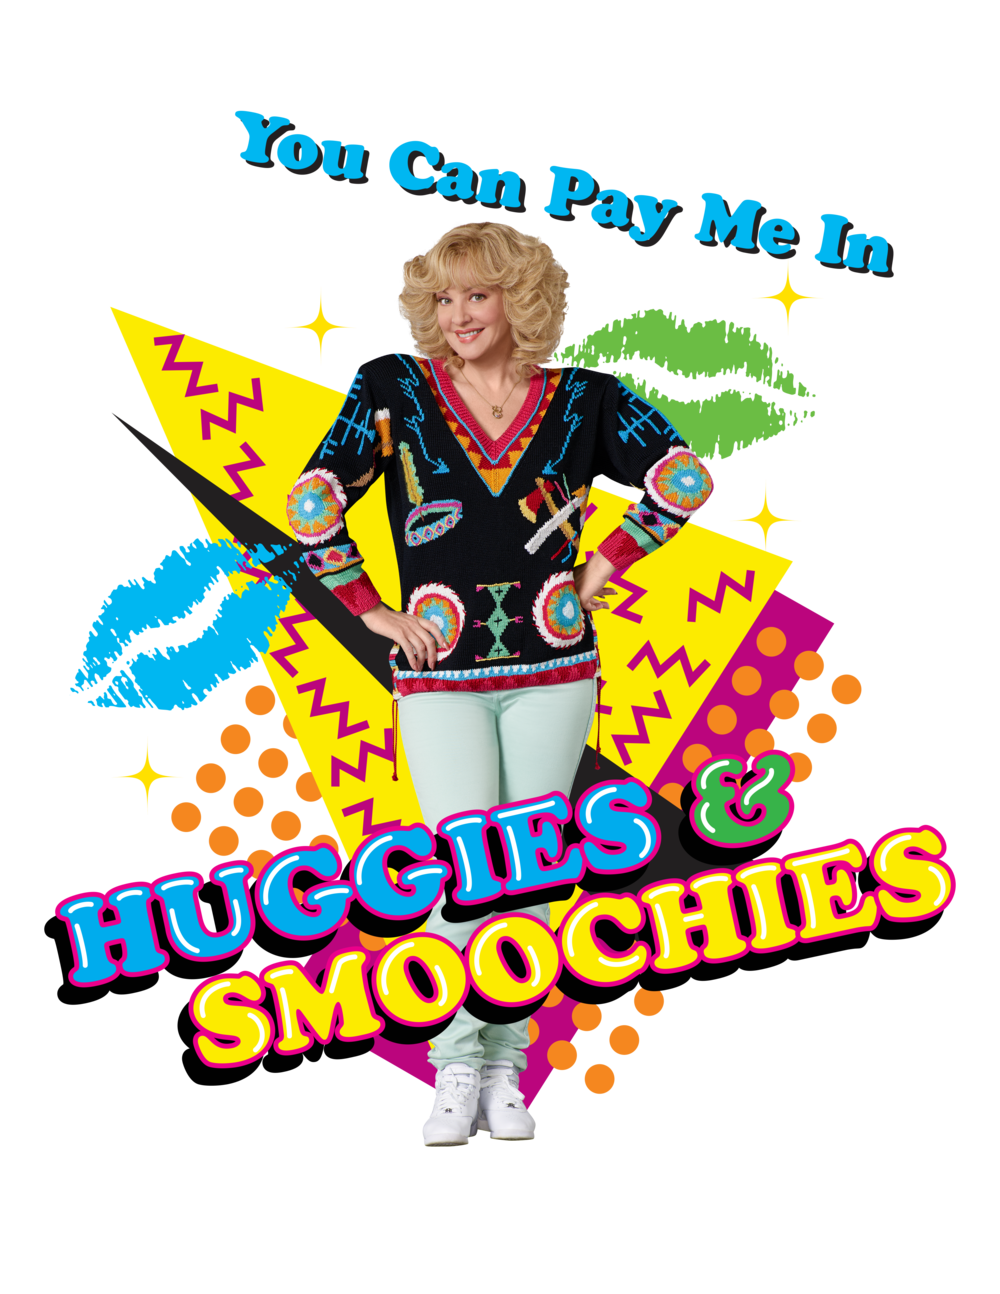 MM_Goldbergs_Graphic_3_r2.png